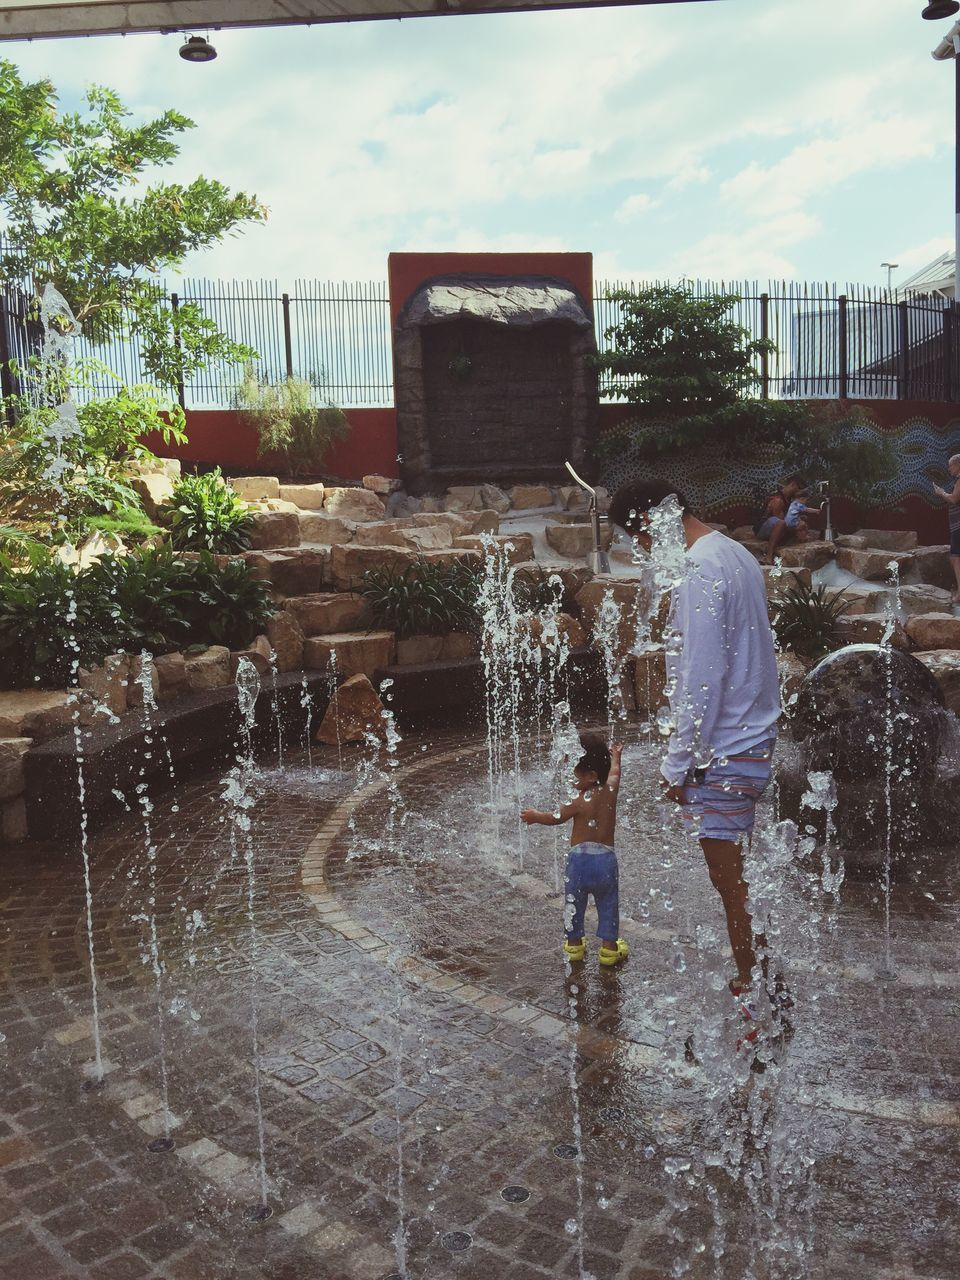 water, childhood, boys, full length, playing, wet, leisure activity, spraying, real people, splashing, standing, fun, togetherness, enjoyment, girls, two people, outdoors, day, motion, bonding, sky, lifestyles, architecture, tree, people